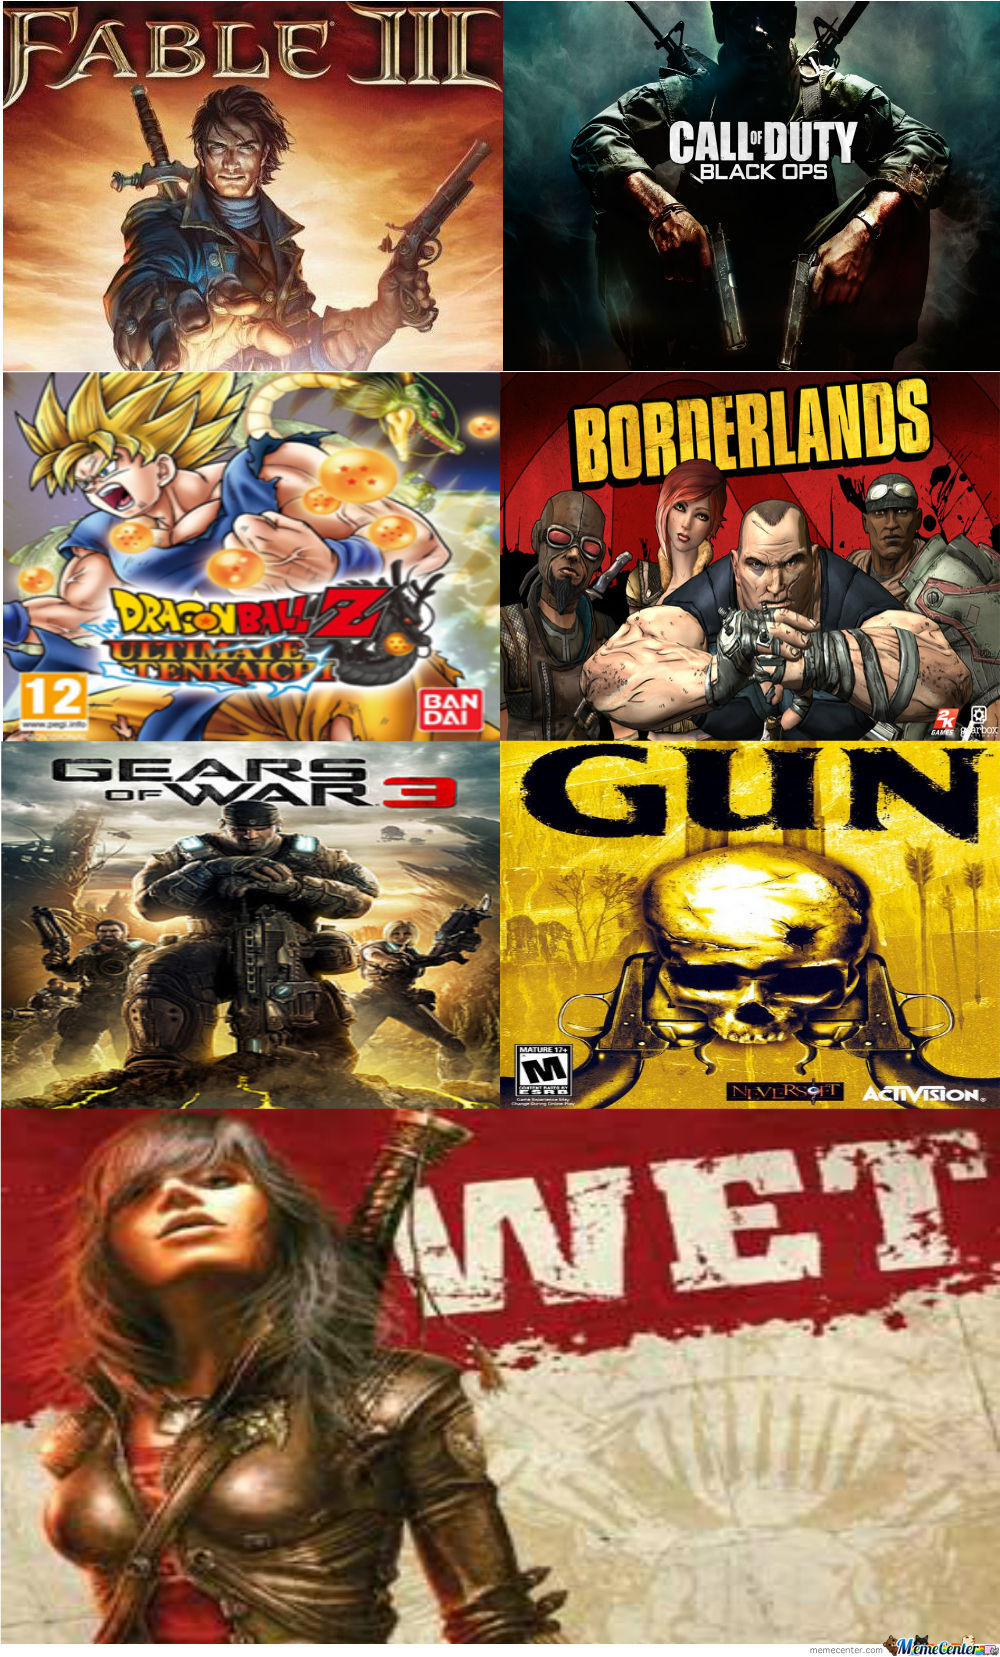 My Top 7 Favorit Games